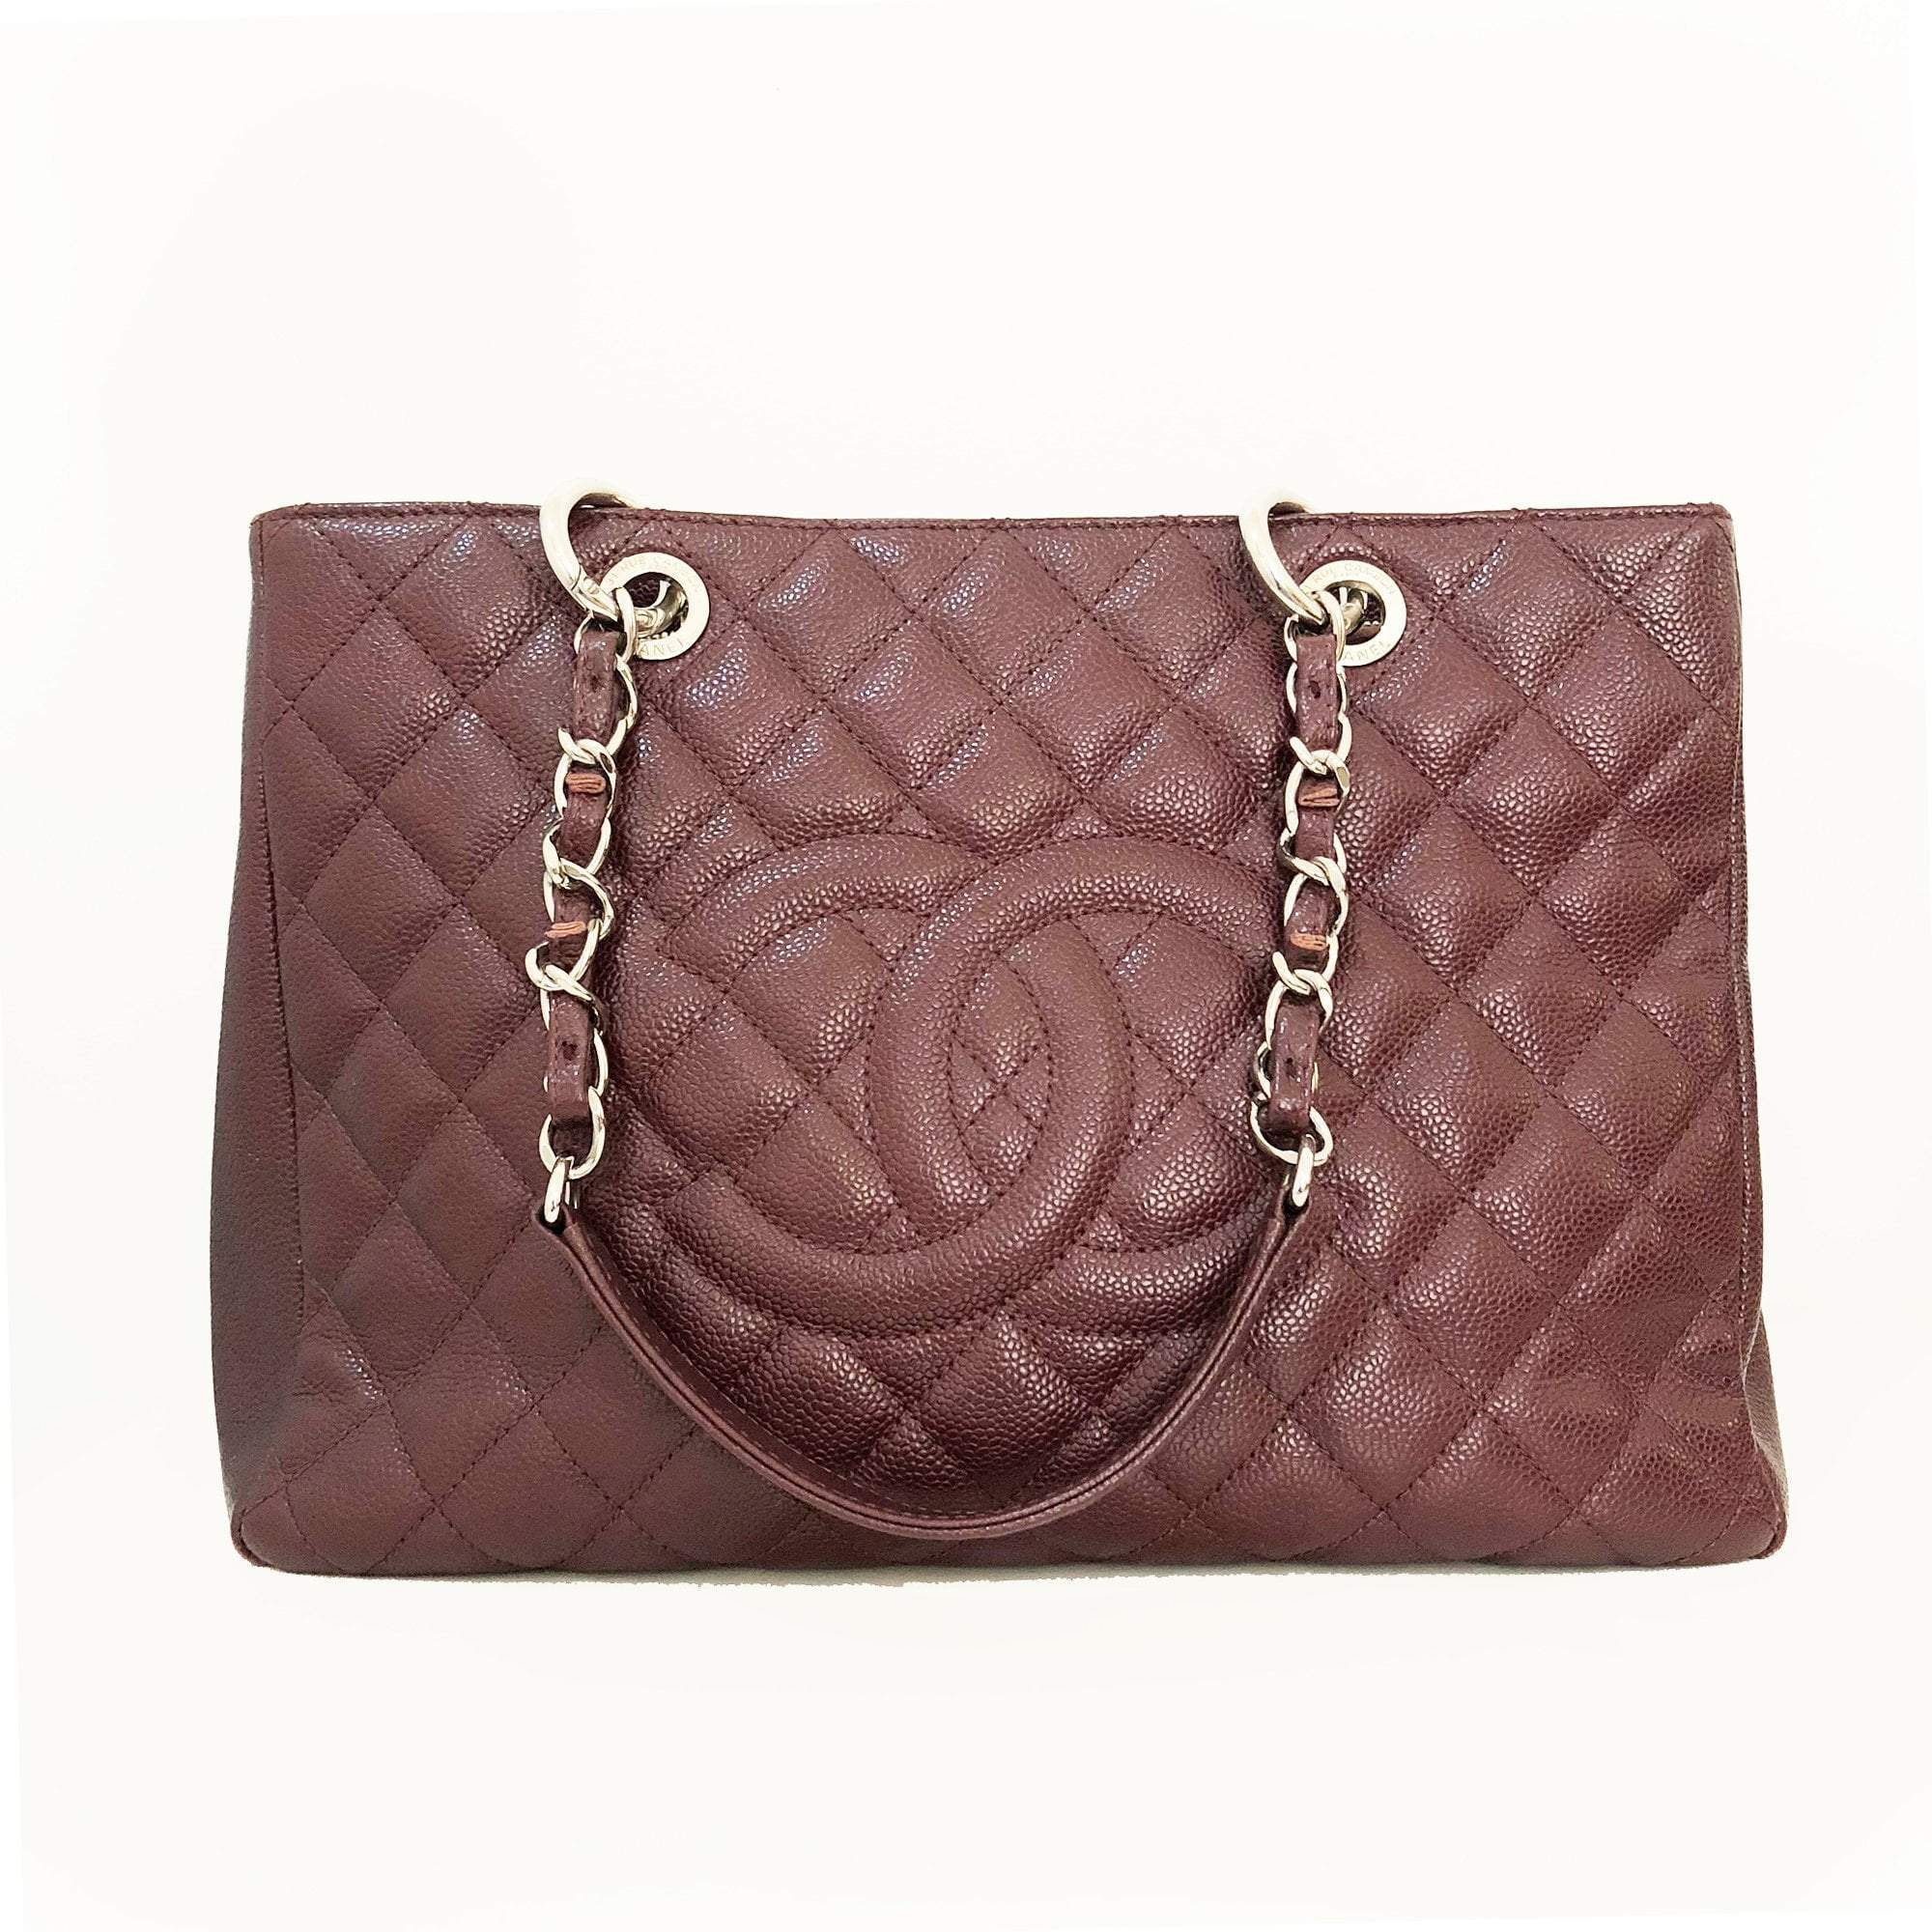 Chanel Burgundy Caviar Classic Grand Shopper Tote GST Bag